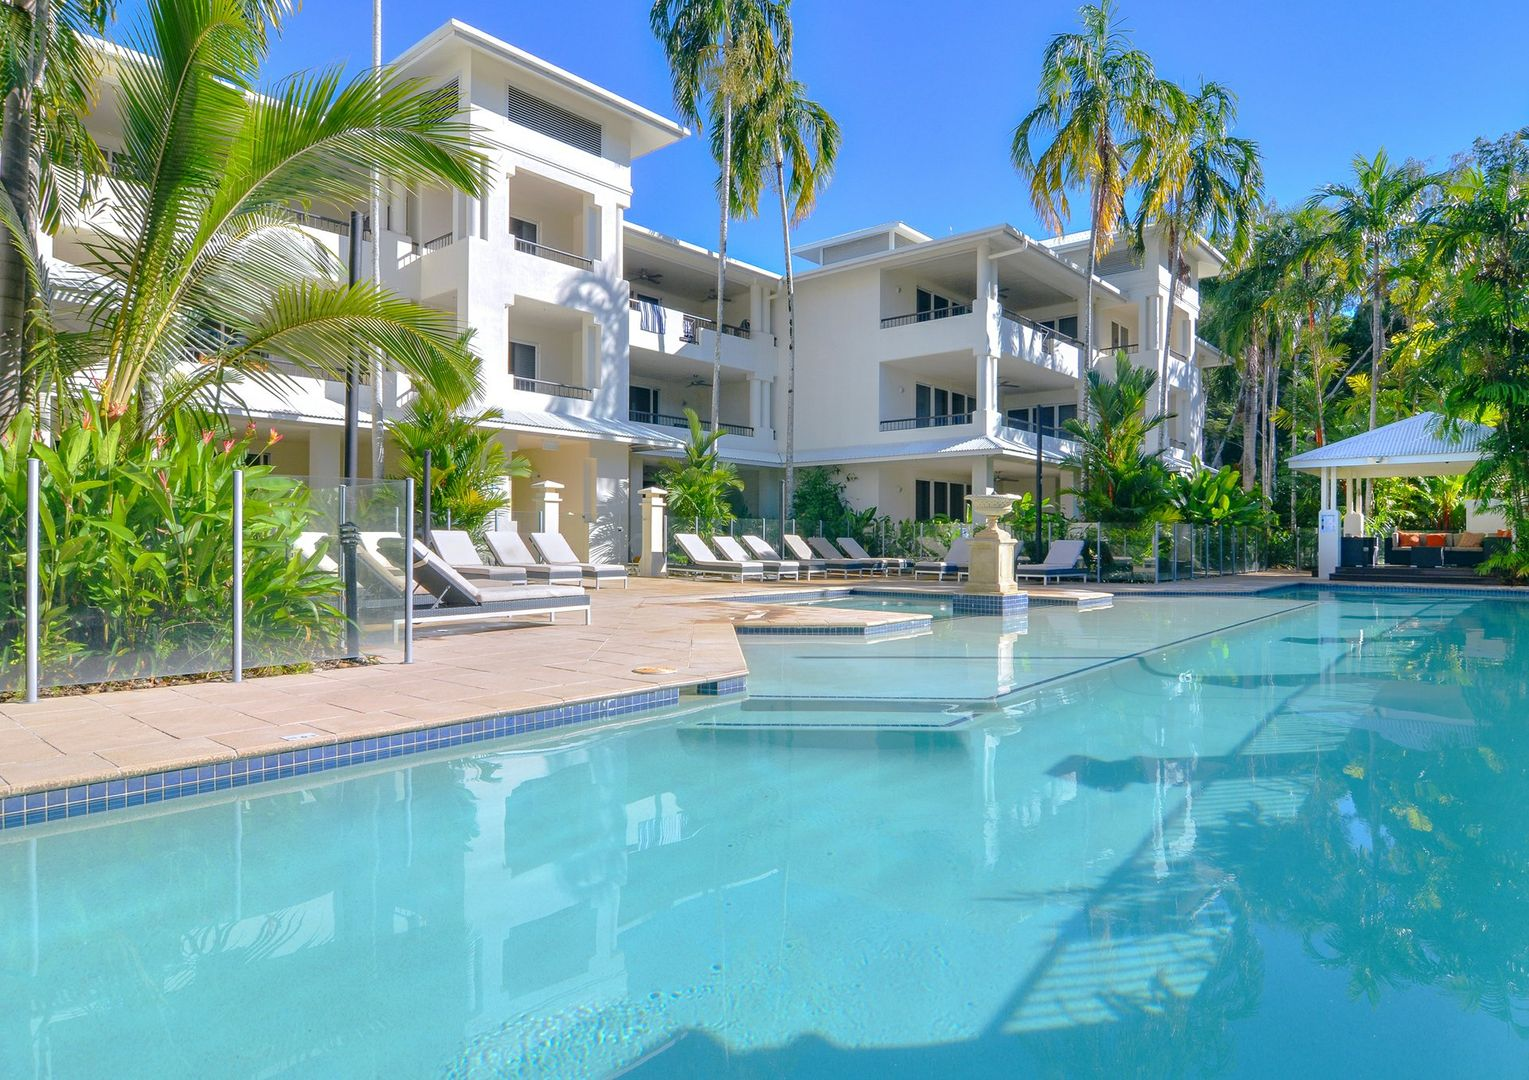 37 Mandalay 1 5 Sand Street Port Douglas Qld 4877 Apartment For